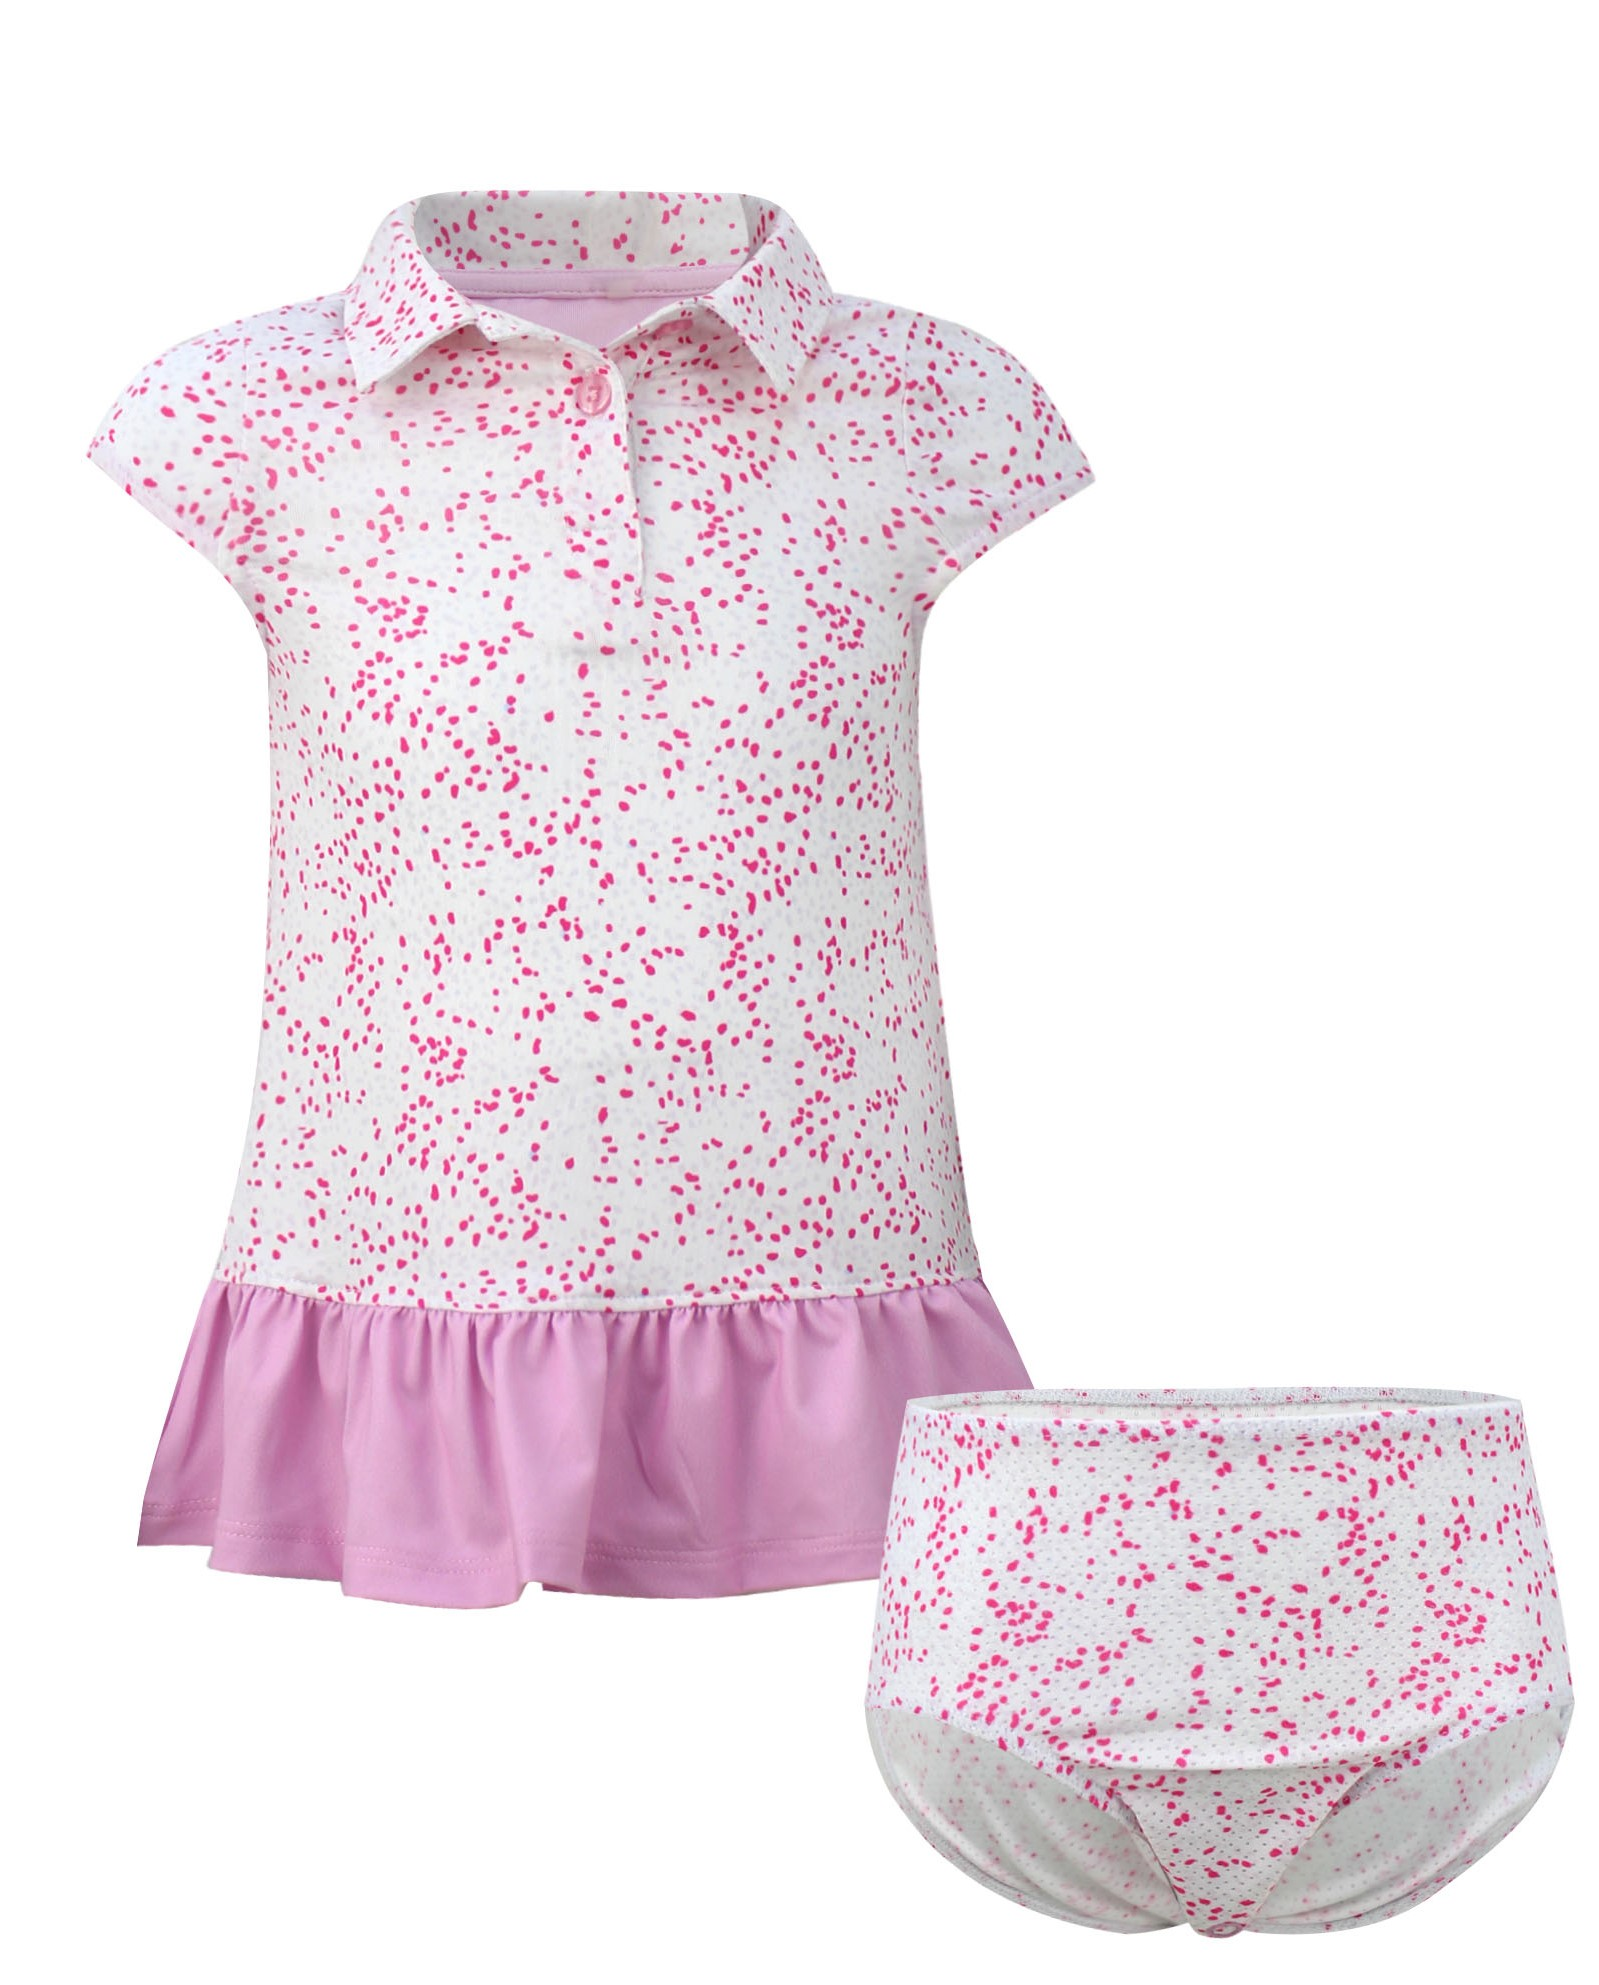 Avery Girls Short Sleeve Infant & Toddler  Golf And Tennis Dress In Pink Spot the Hole Print